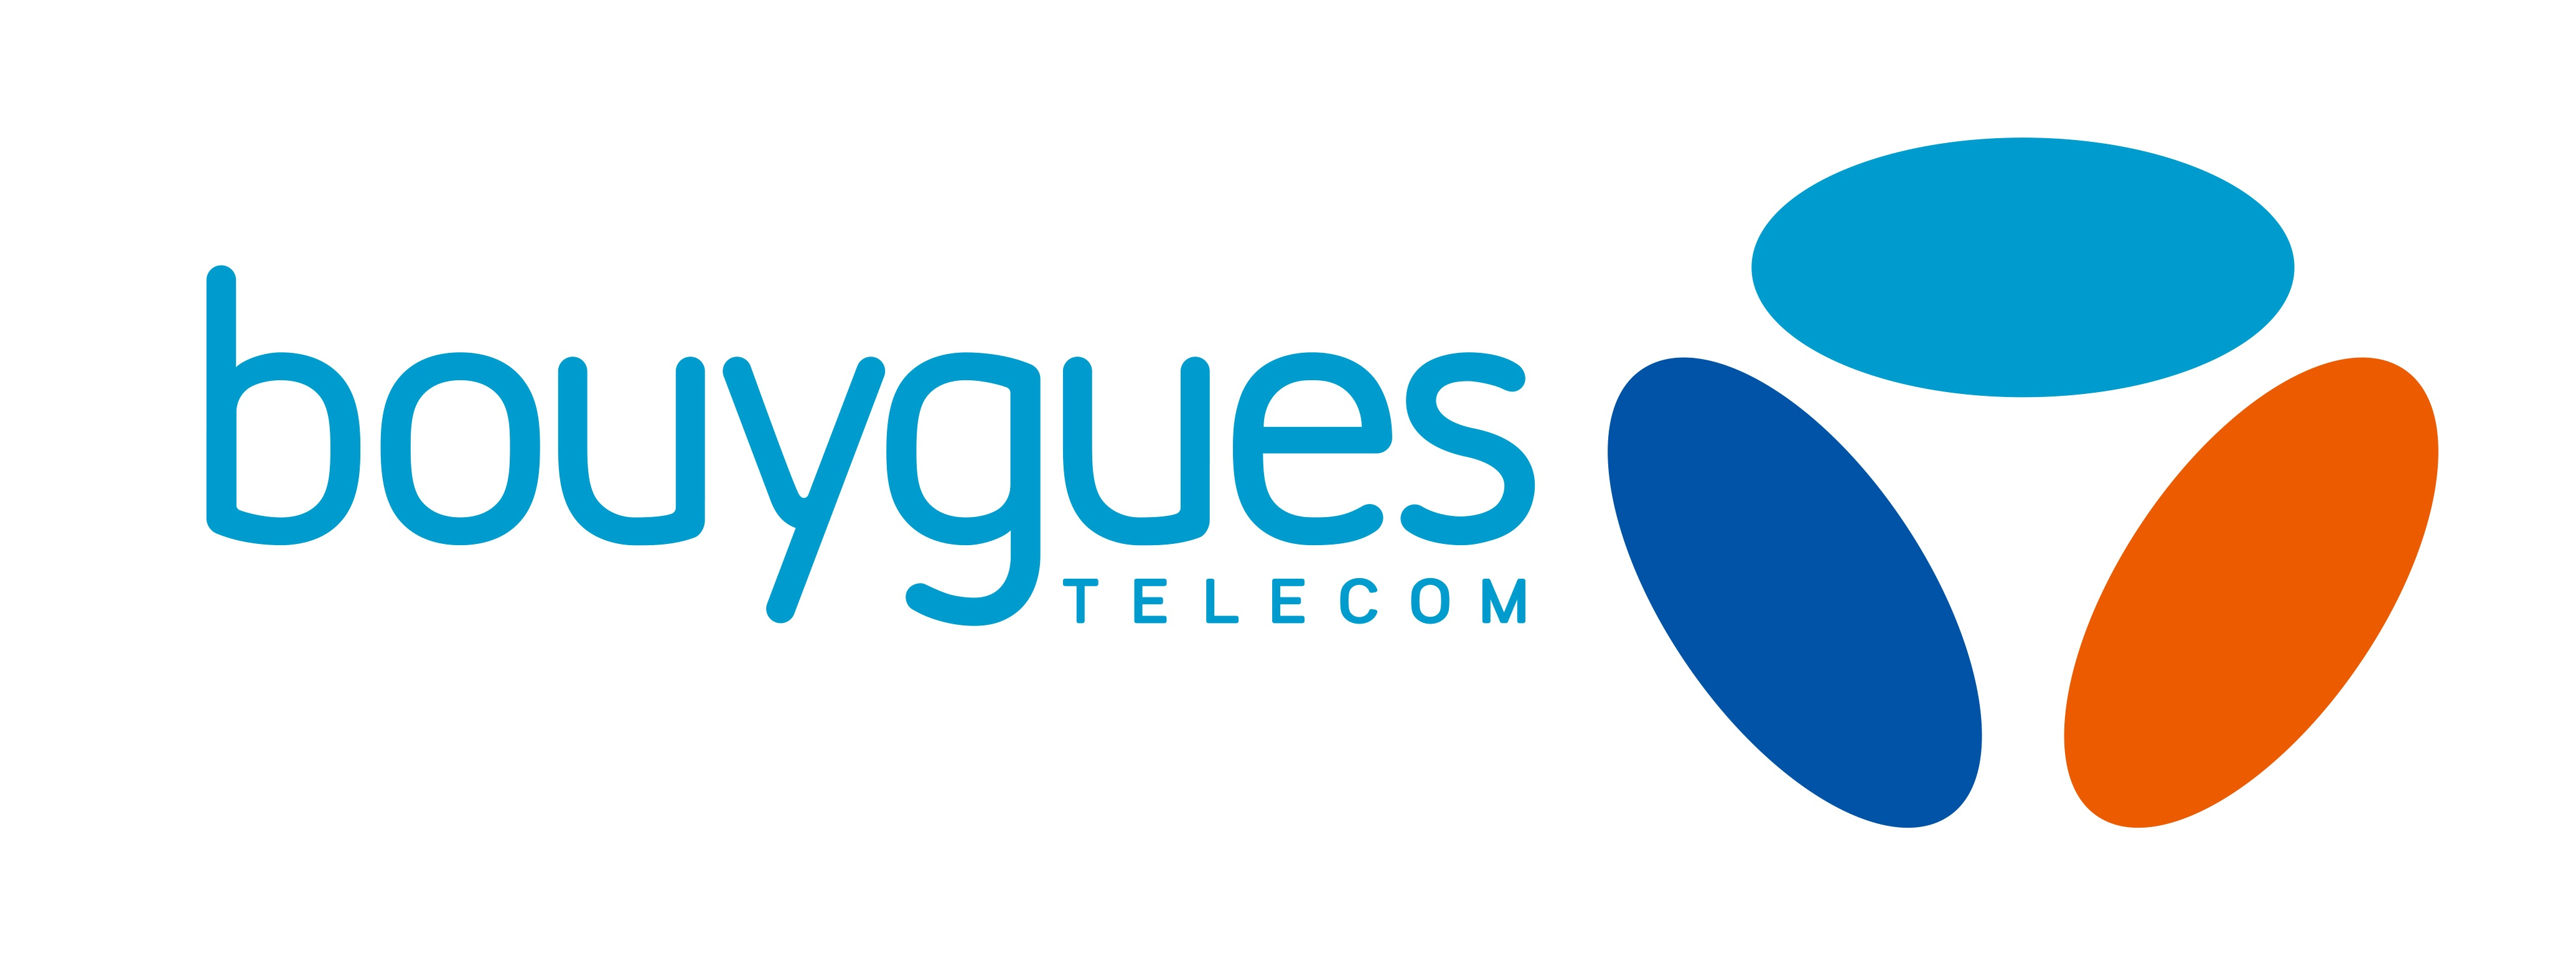 1429704362Bouygues